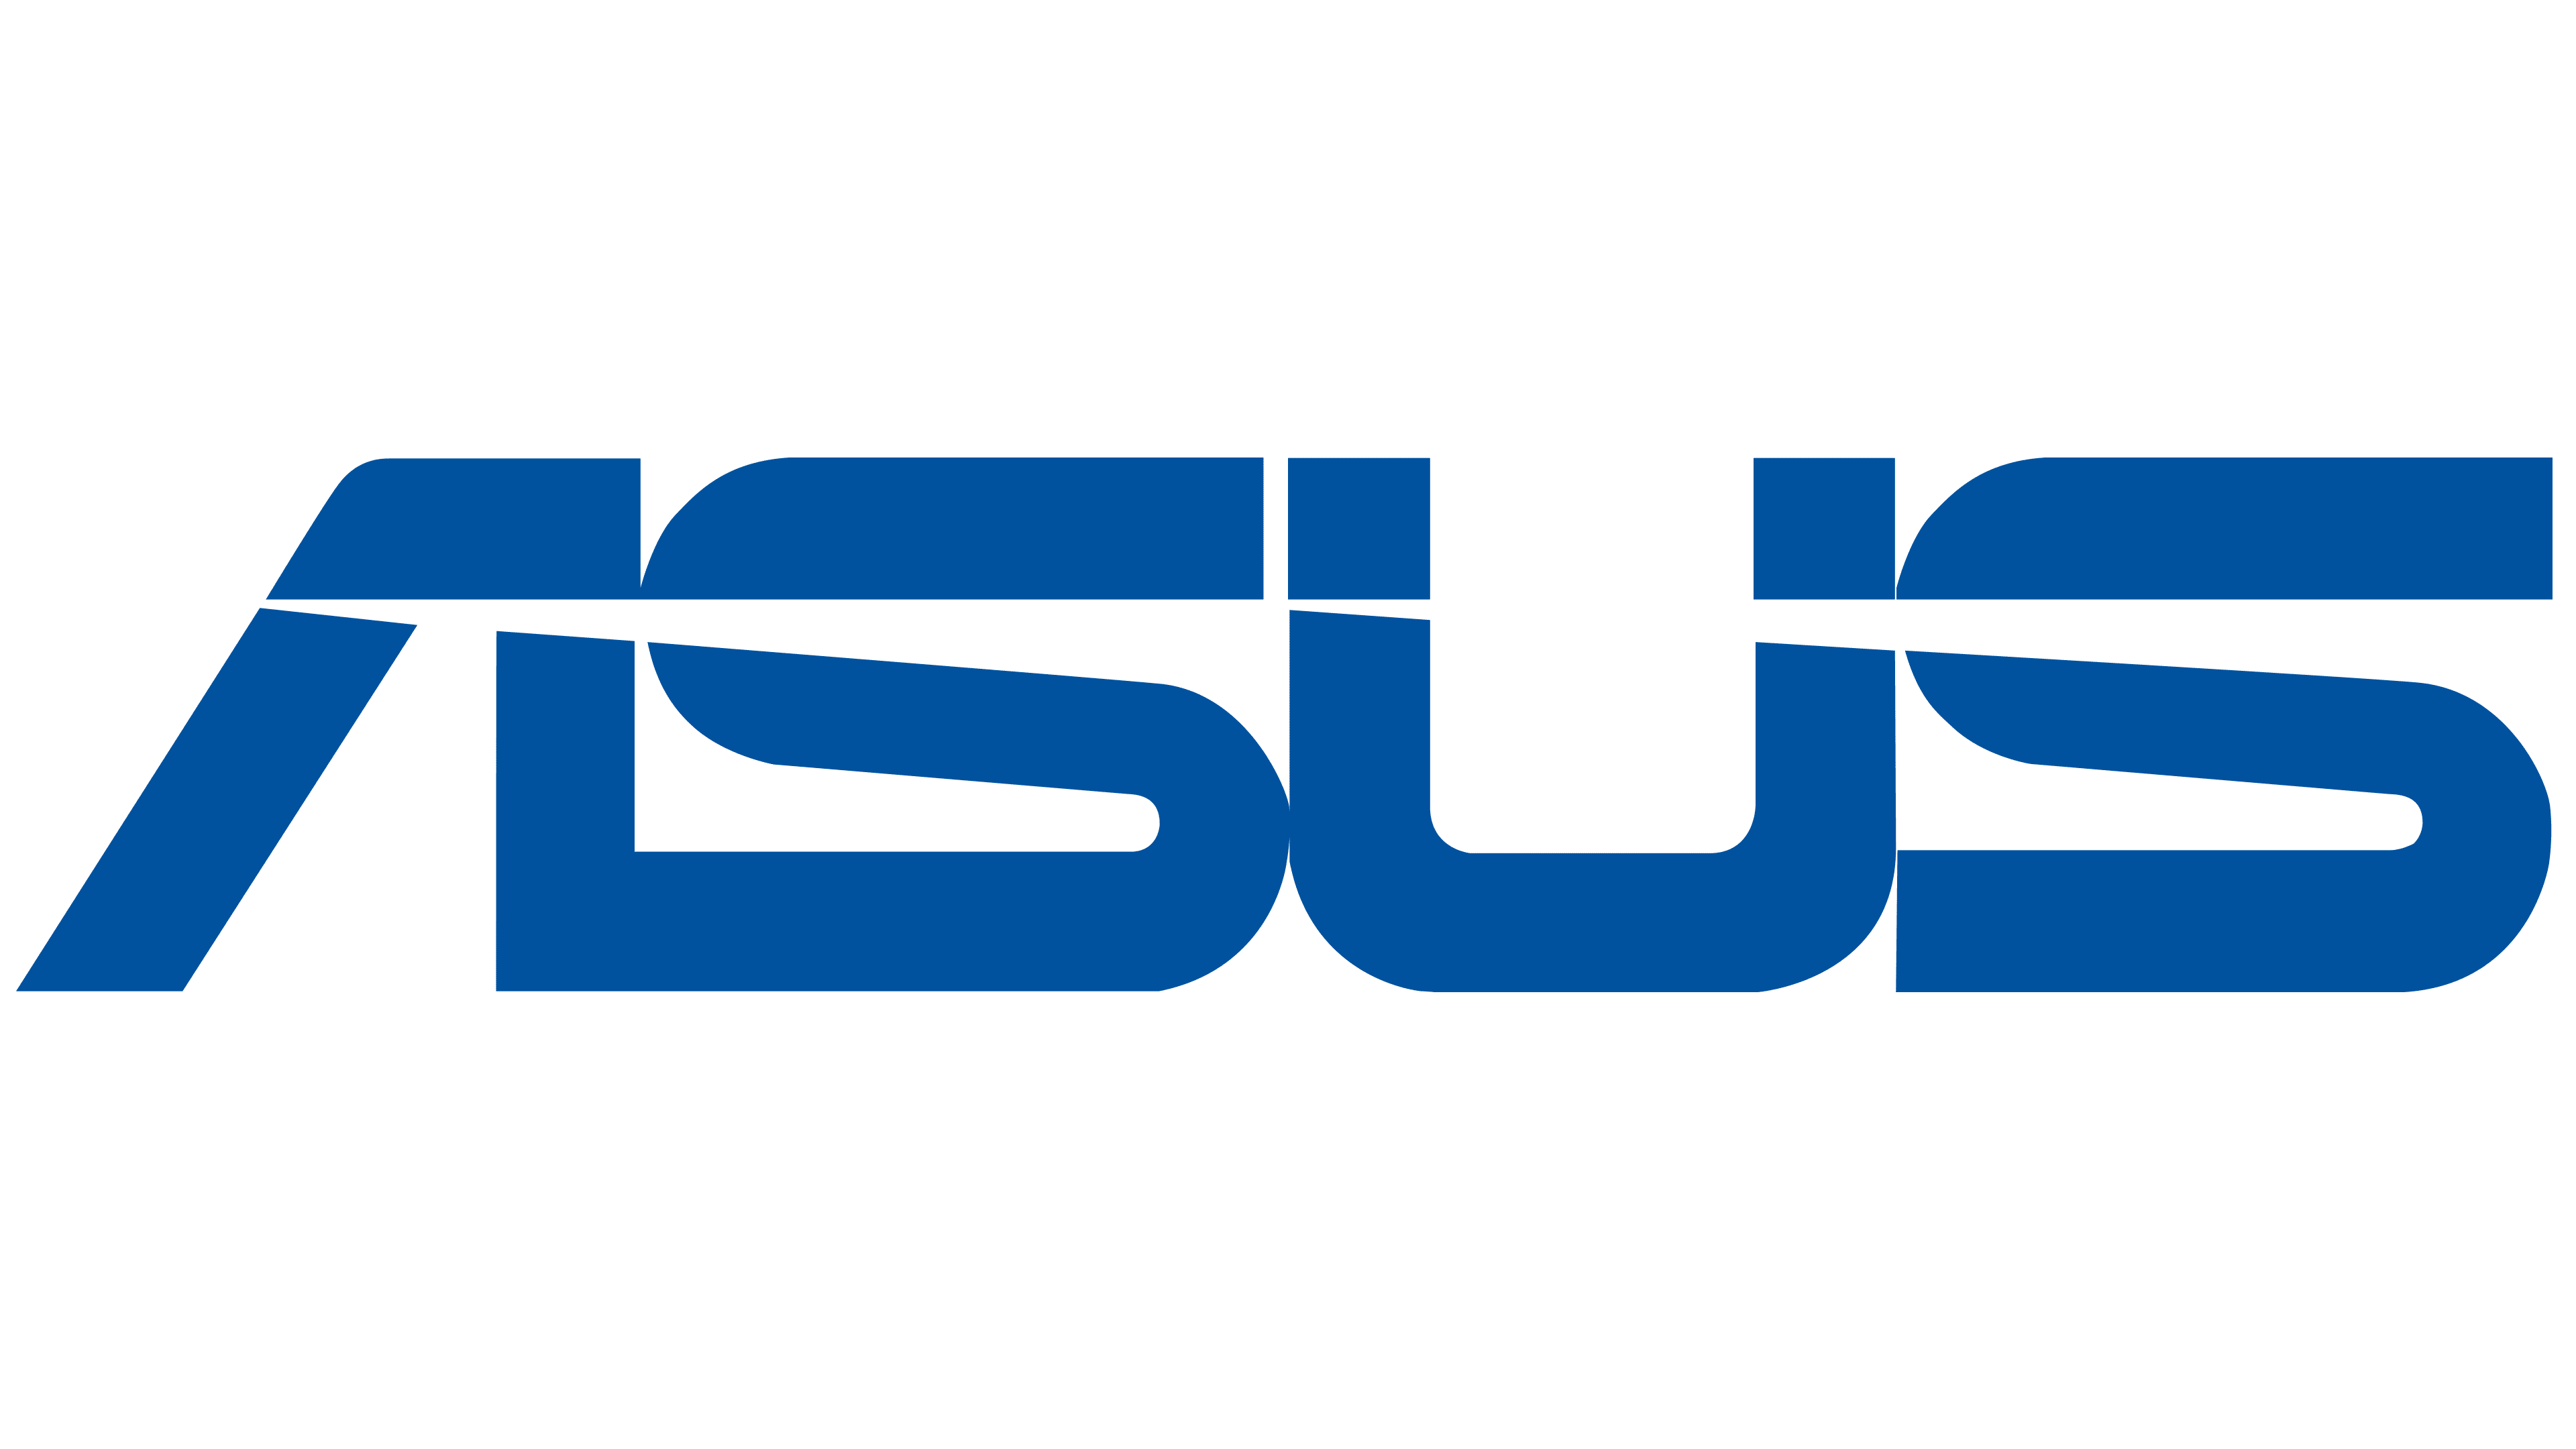 https://phone-station.com/category/asus-166_168